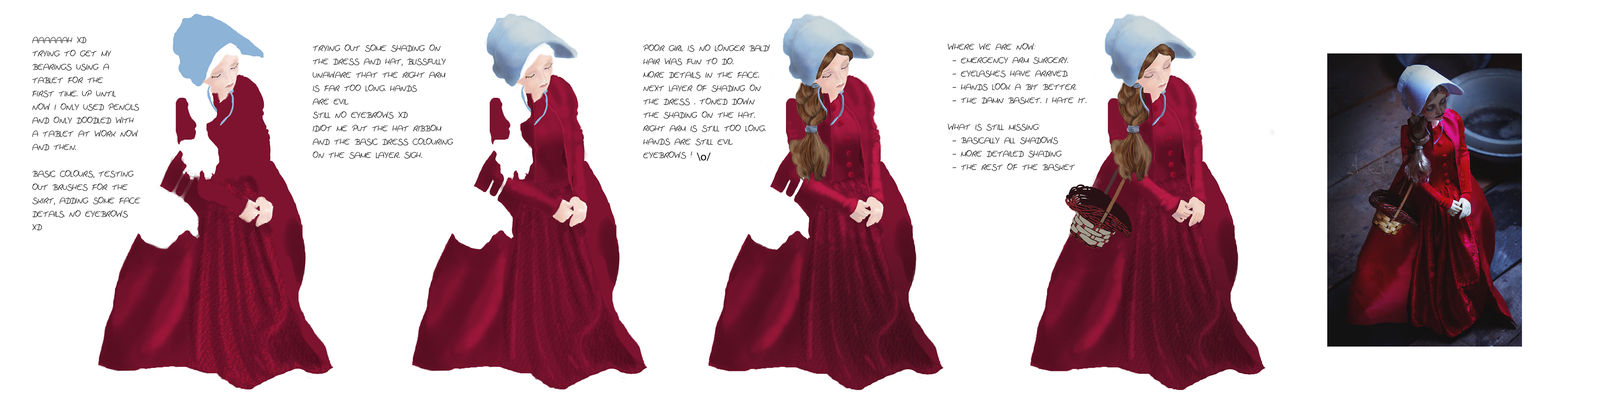 First steps with a graphic tablet - Handmaid WIP by chakaru